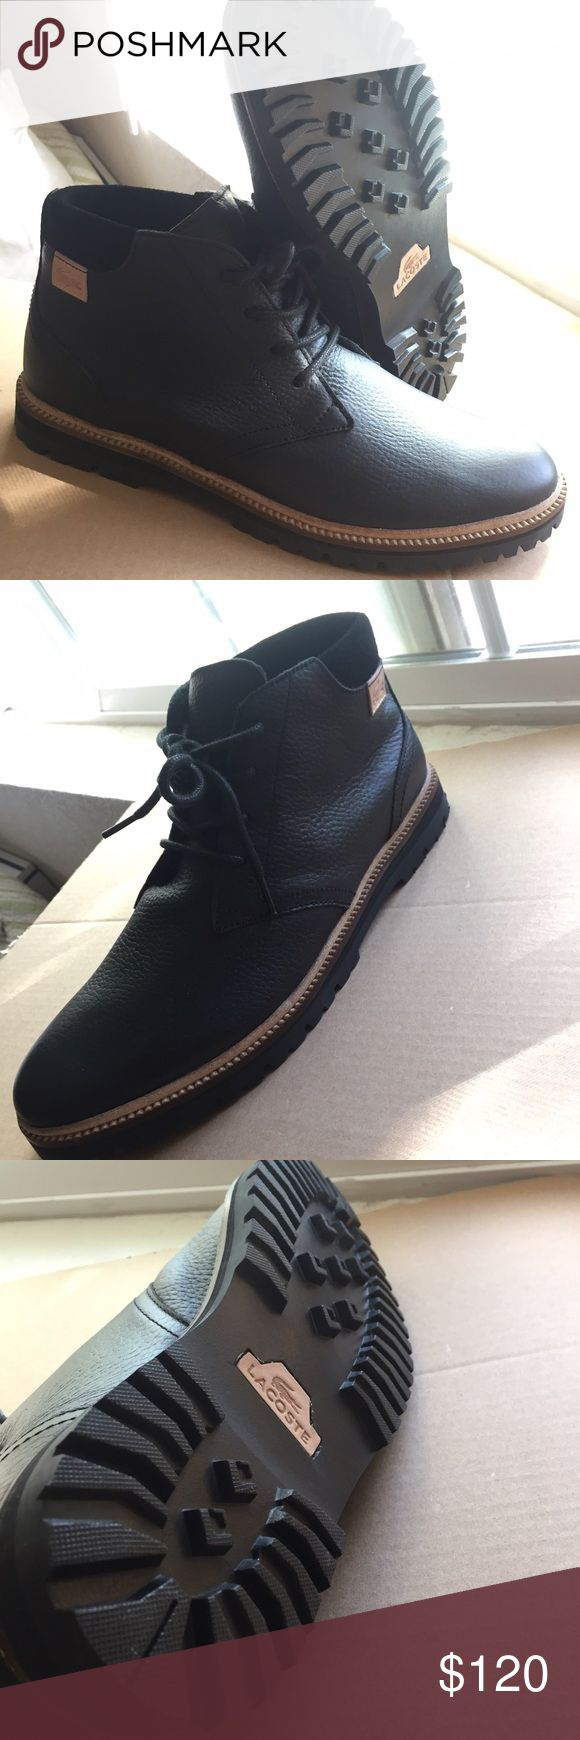 1 day sale NEW Lacoste Montbard chukka 2 size 11 Brand new black leather Lacoste montbard chukka 2 boots in men's size 11. Never worn and they have been sitting in my closet for two months now and just seems like a waste. Selling on eBay for $150+. Lacoste Shoes Chukka Boots